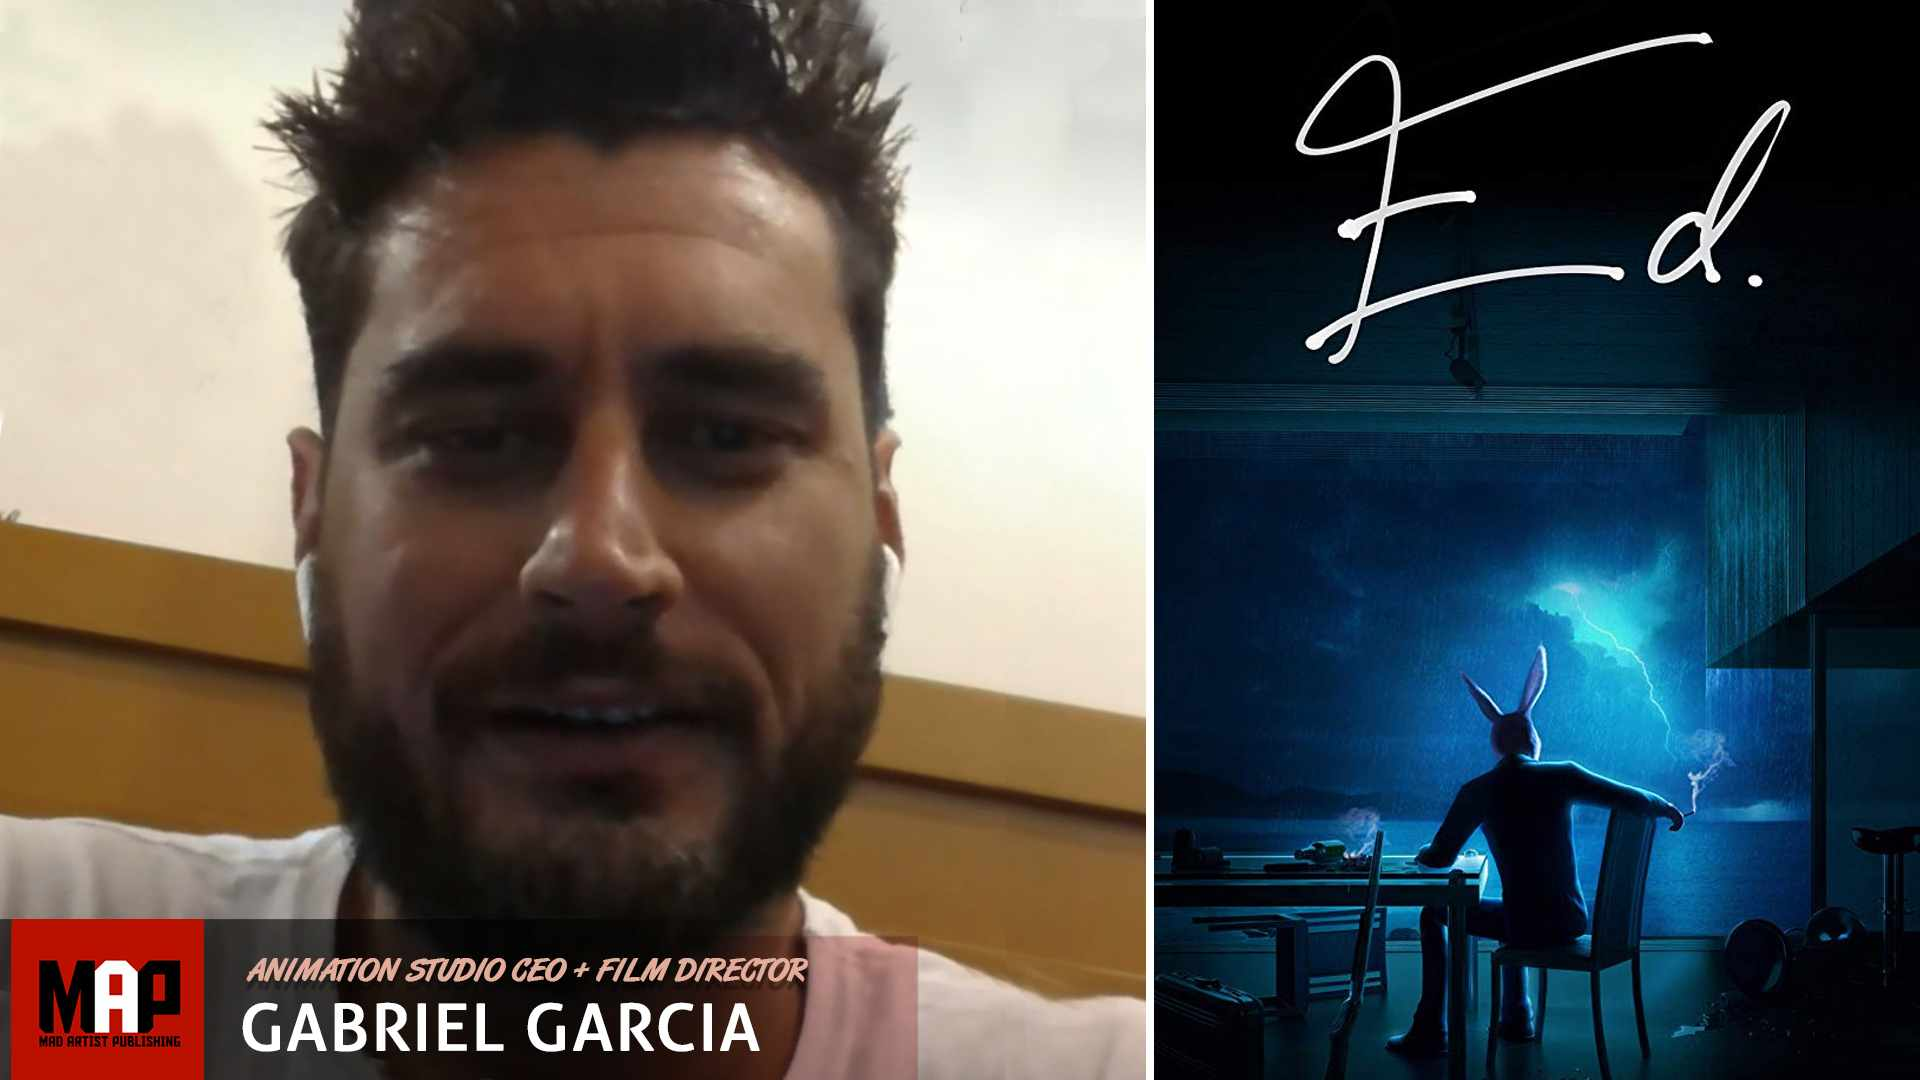 Director Gabriel Garcia Interview on CGI Animated Short Film ** ED ** Movie (PART 1)